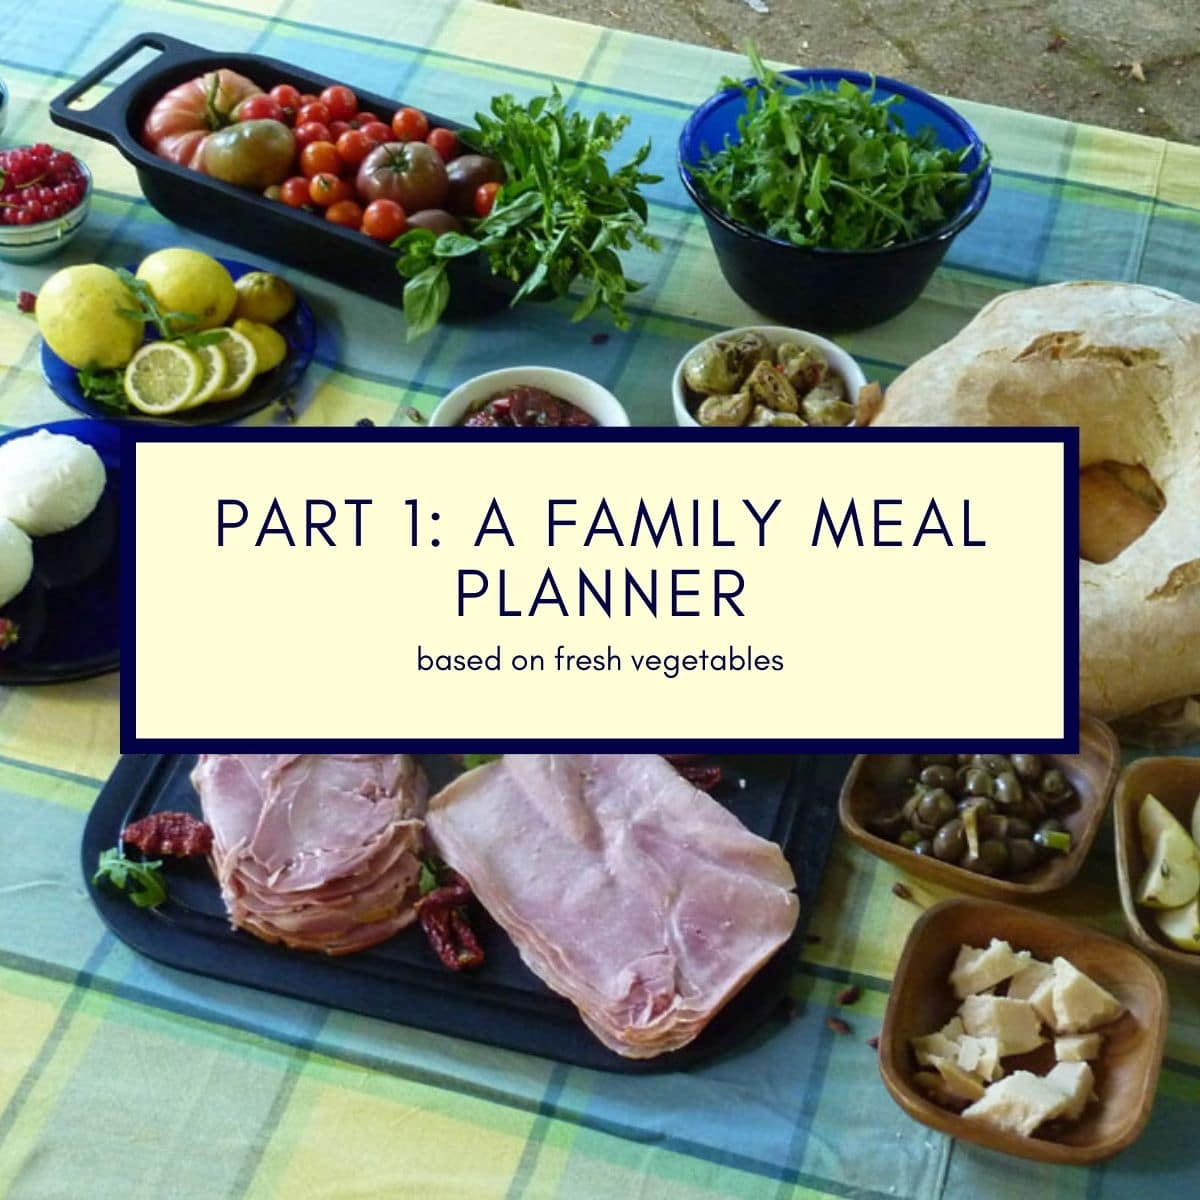 A Family Meal Planner